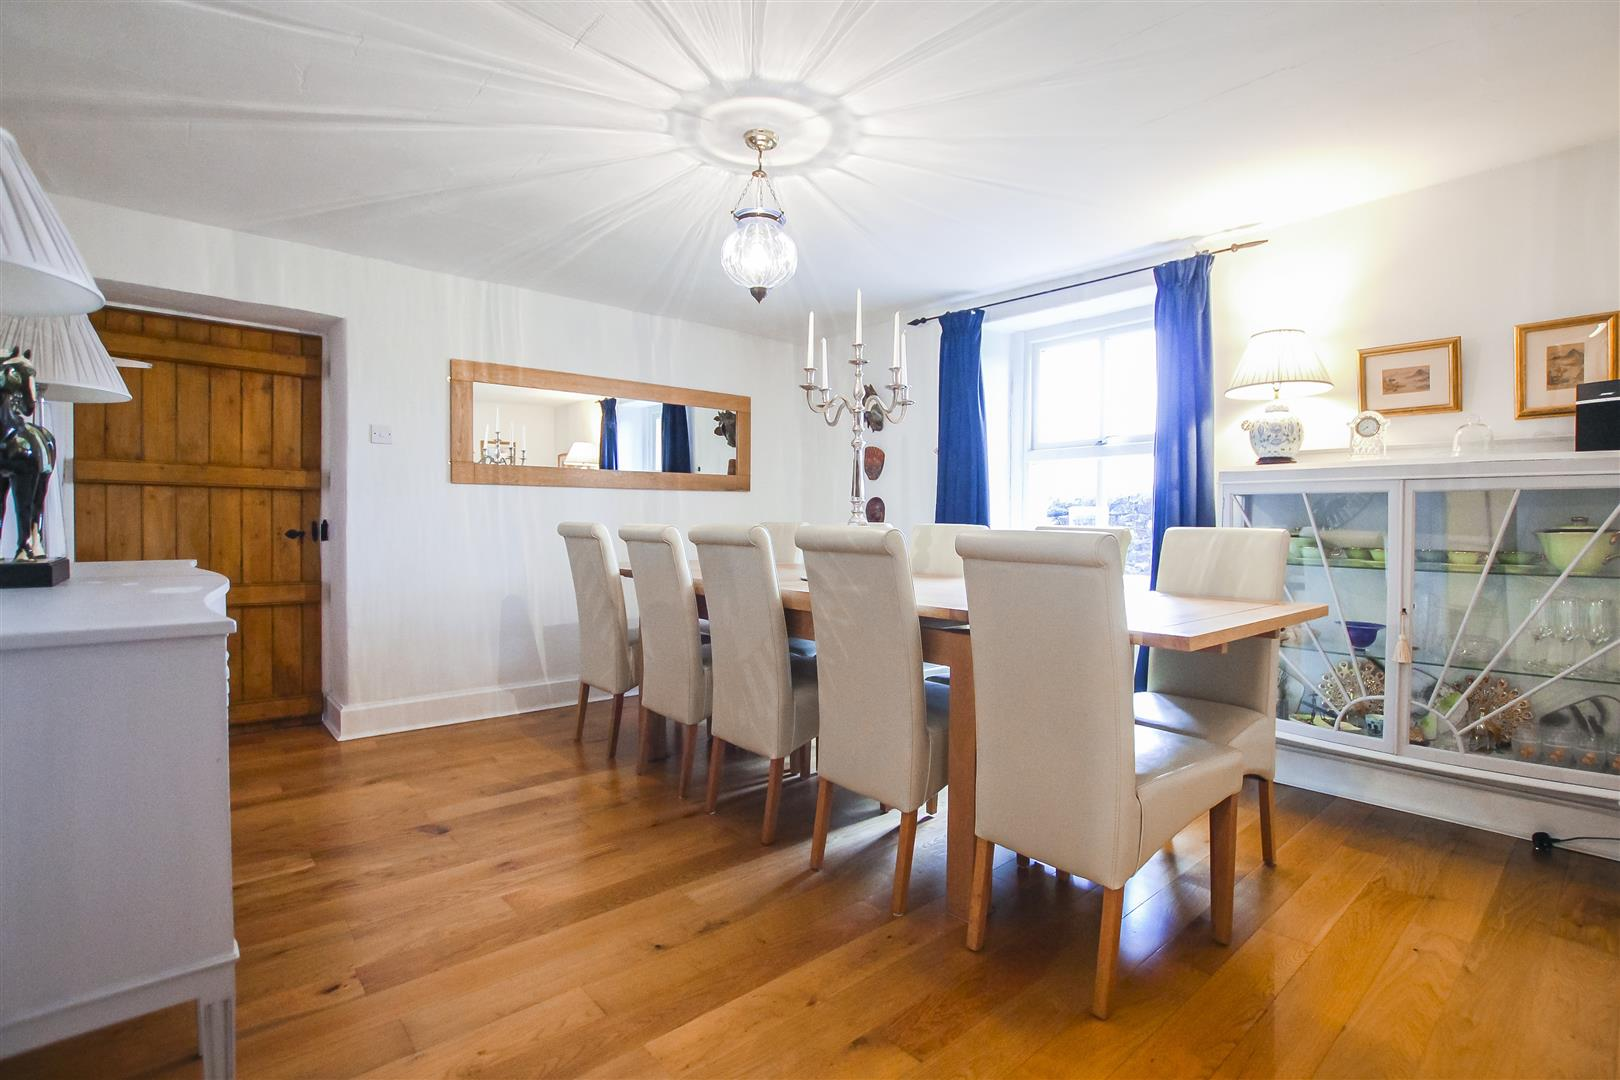 4 Bedroom House For Sale - Dining Room